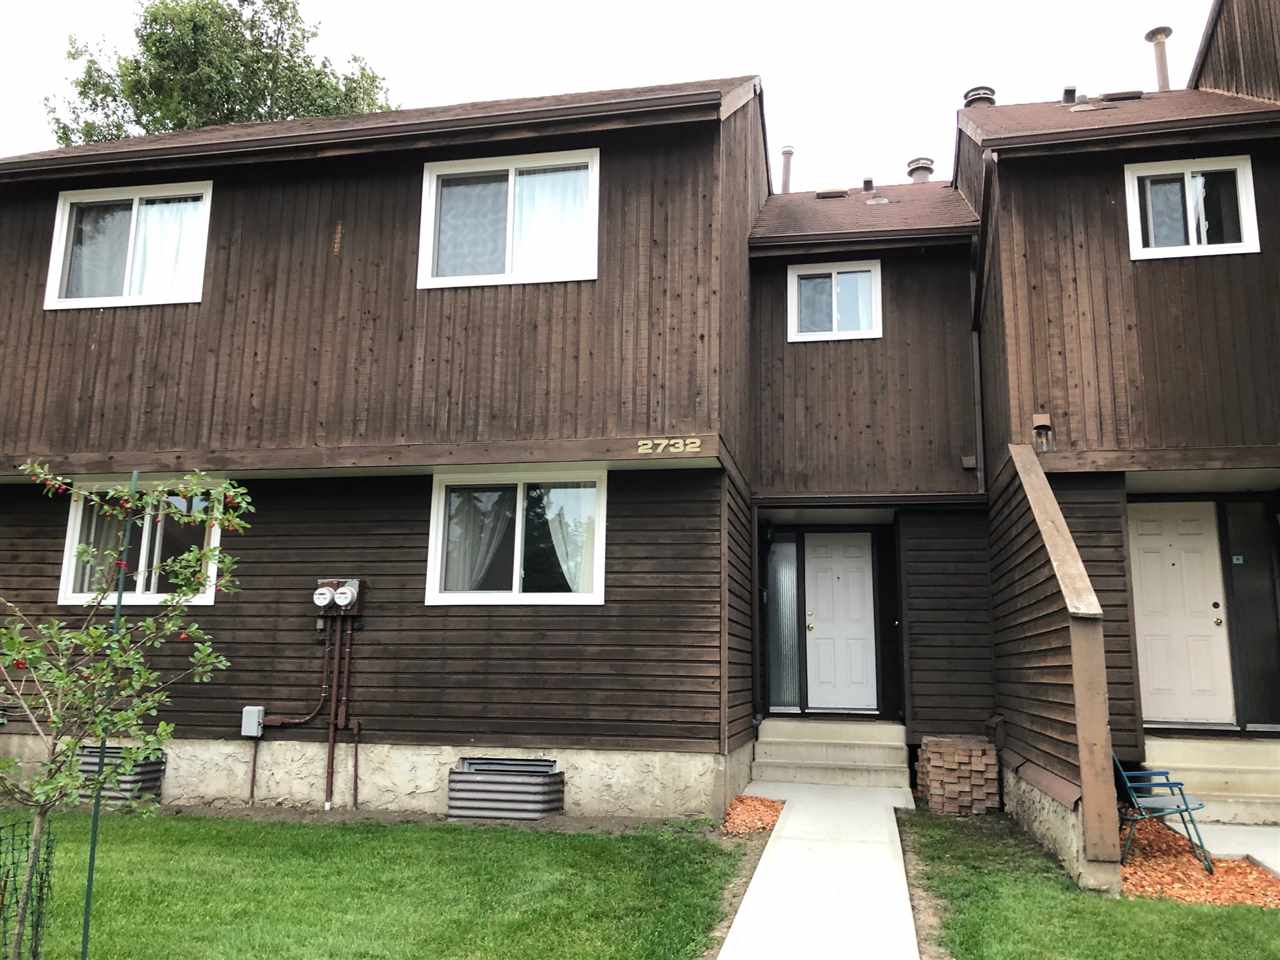 MLS® listing #E4167380 for sale located at 2732 105 Street